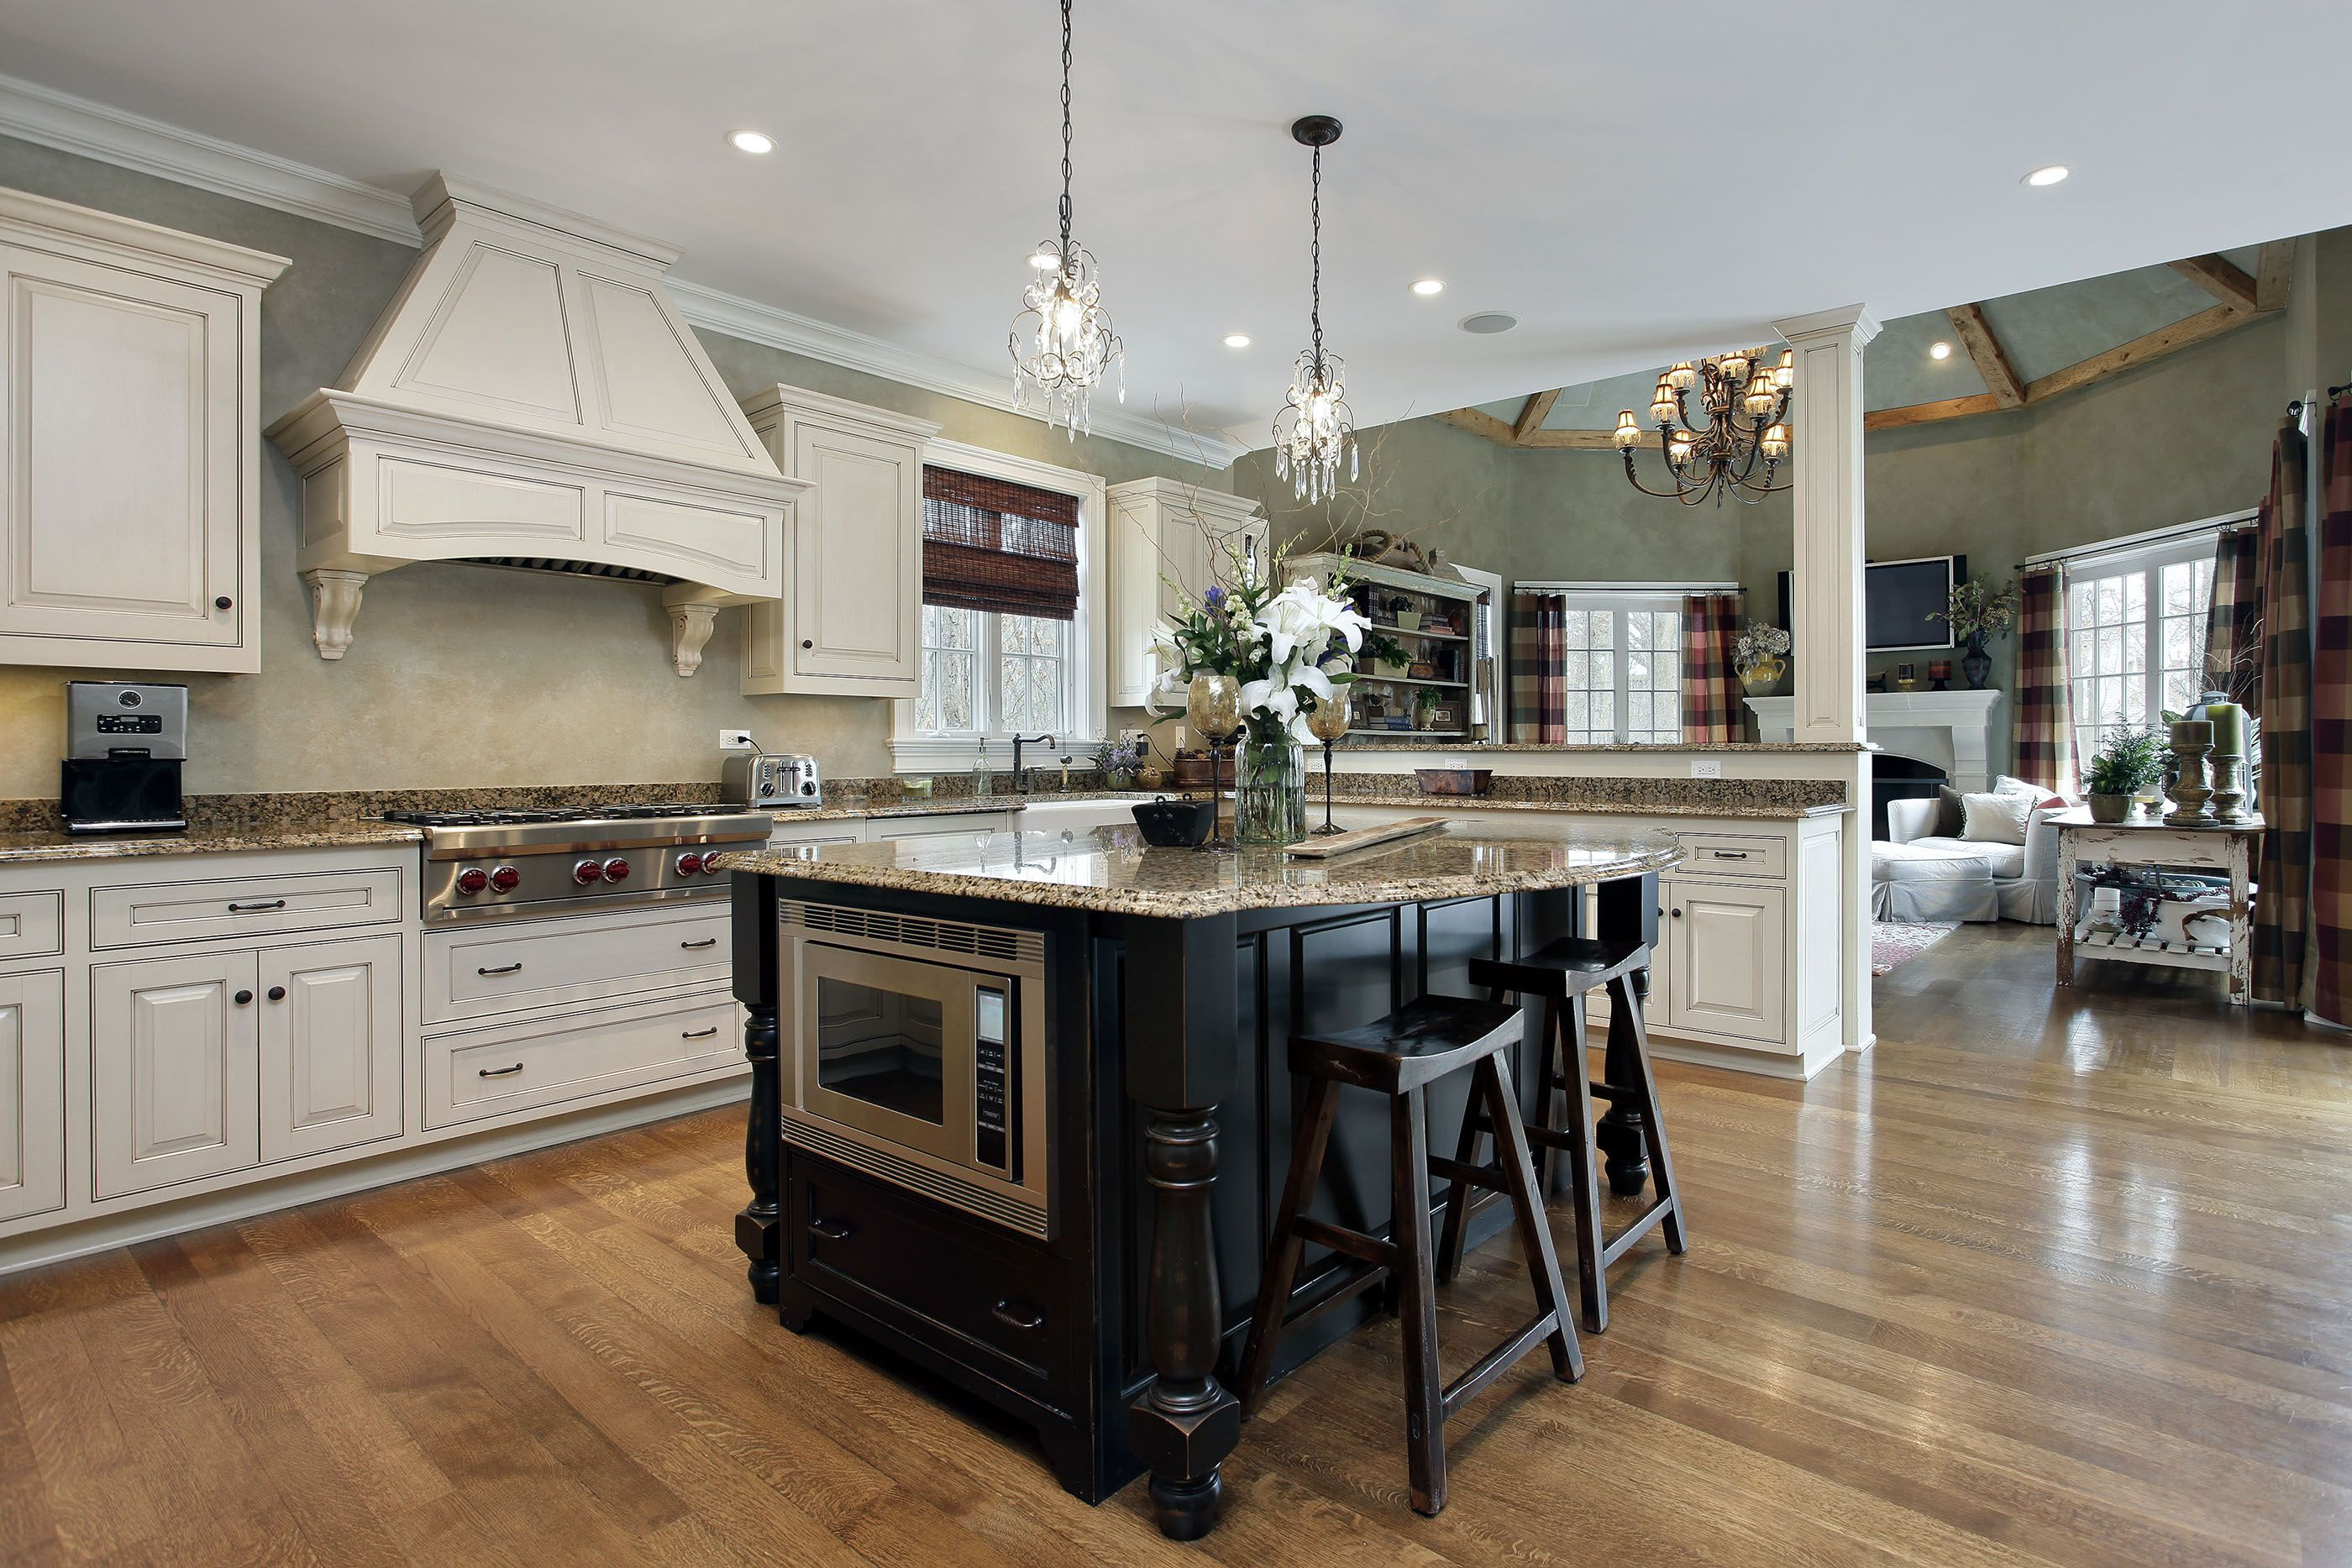 Kitchen Remodeling Dallas Bath Design Contractor Tribute Kitchen Design Open Luxury Kitchen Island Luxury Kitchens